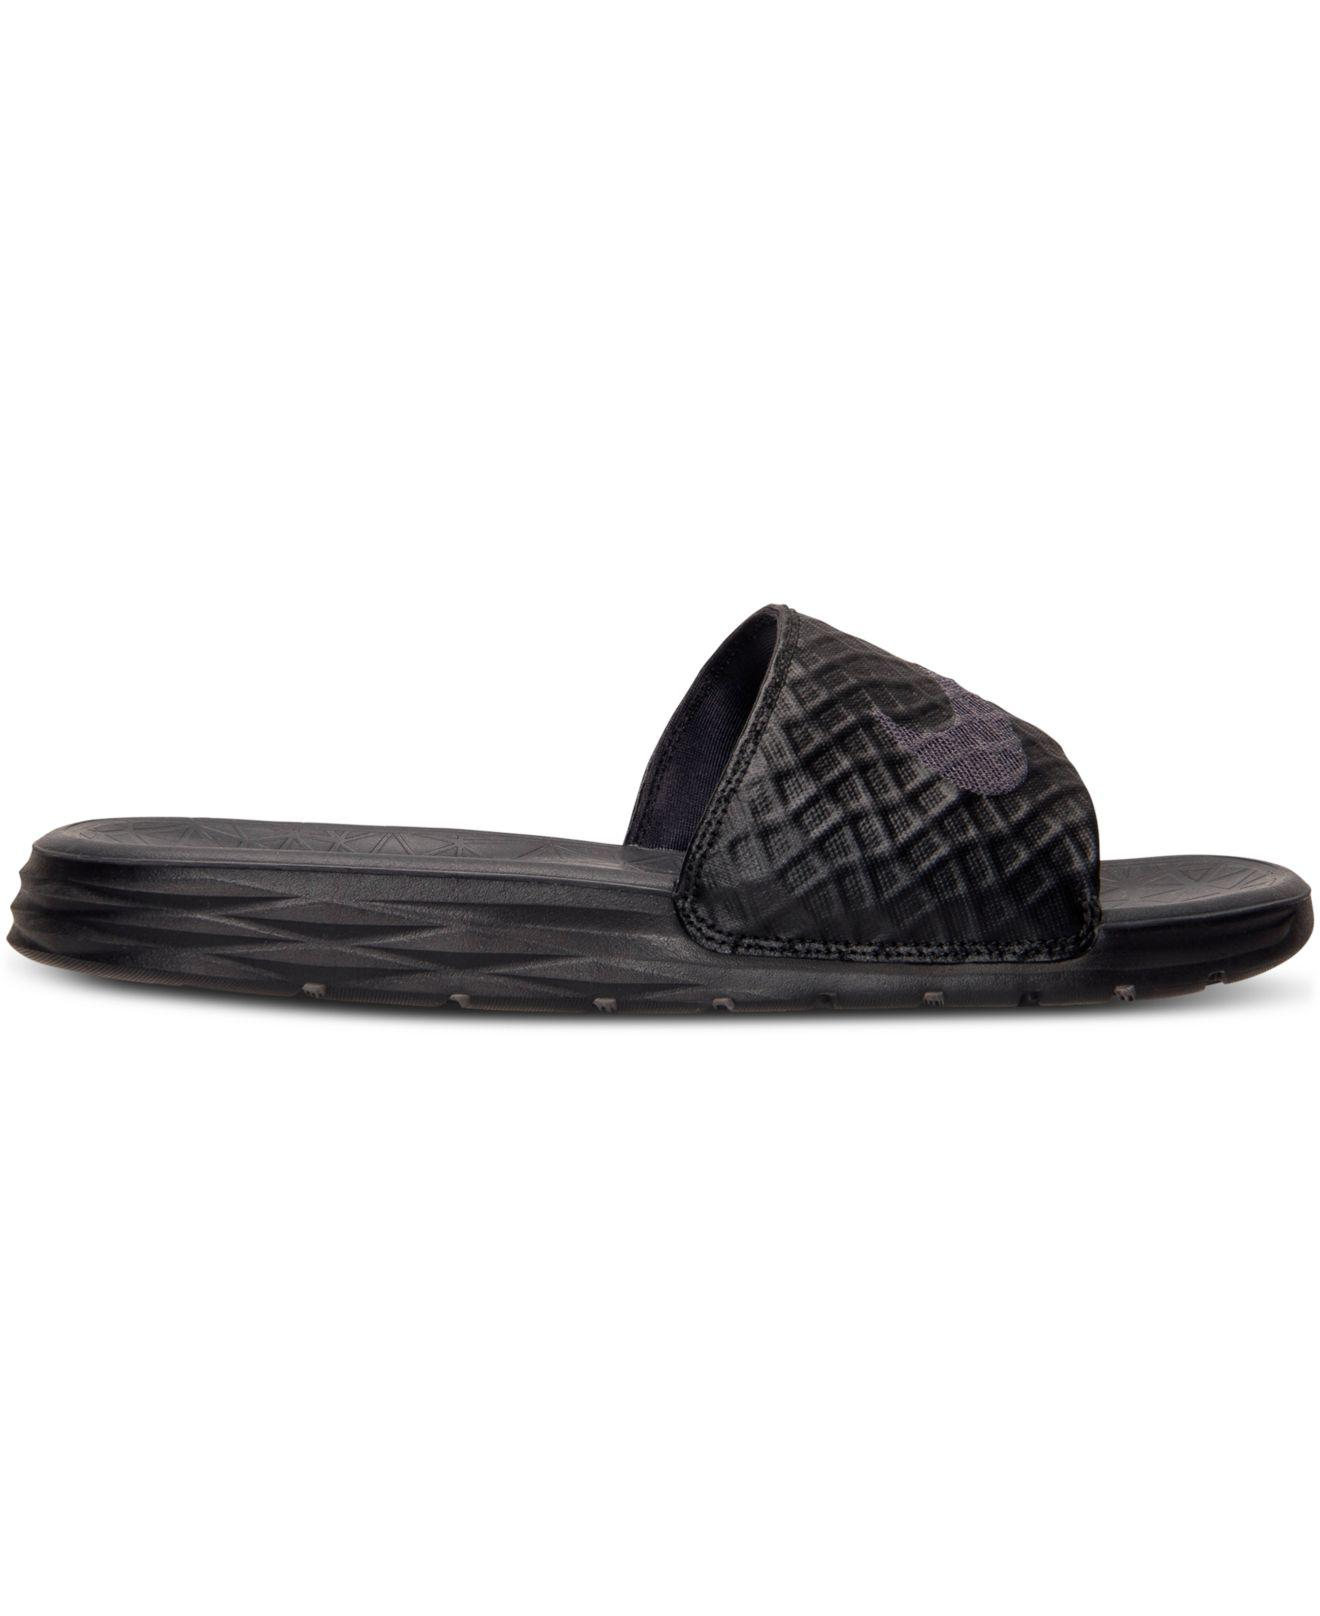 c7ec53c9ef67 Lyst - Nike Benassi Solarsoft Black  Anthracite in Black for Men - Save 28%